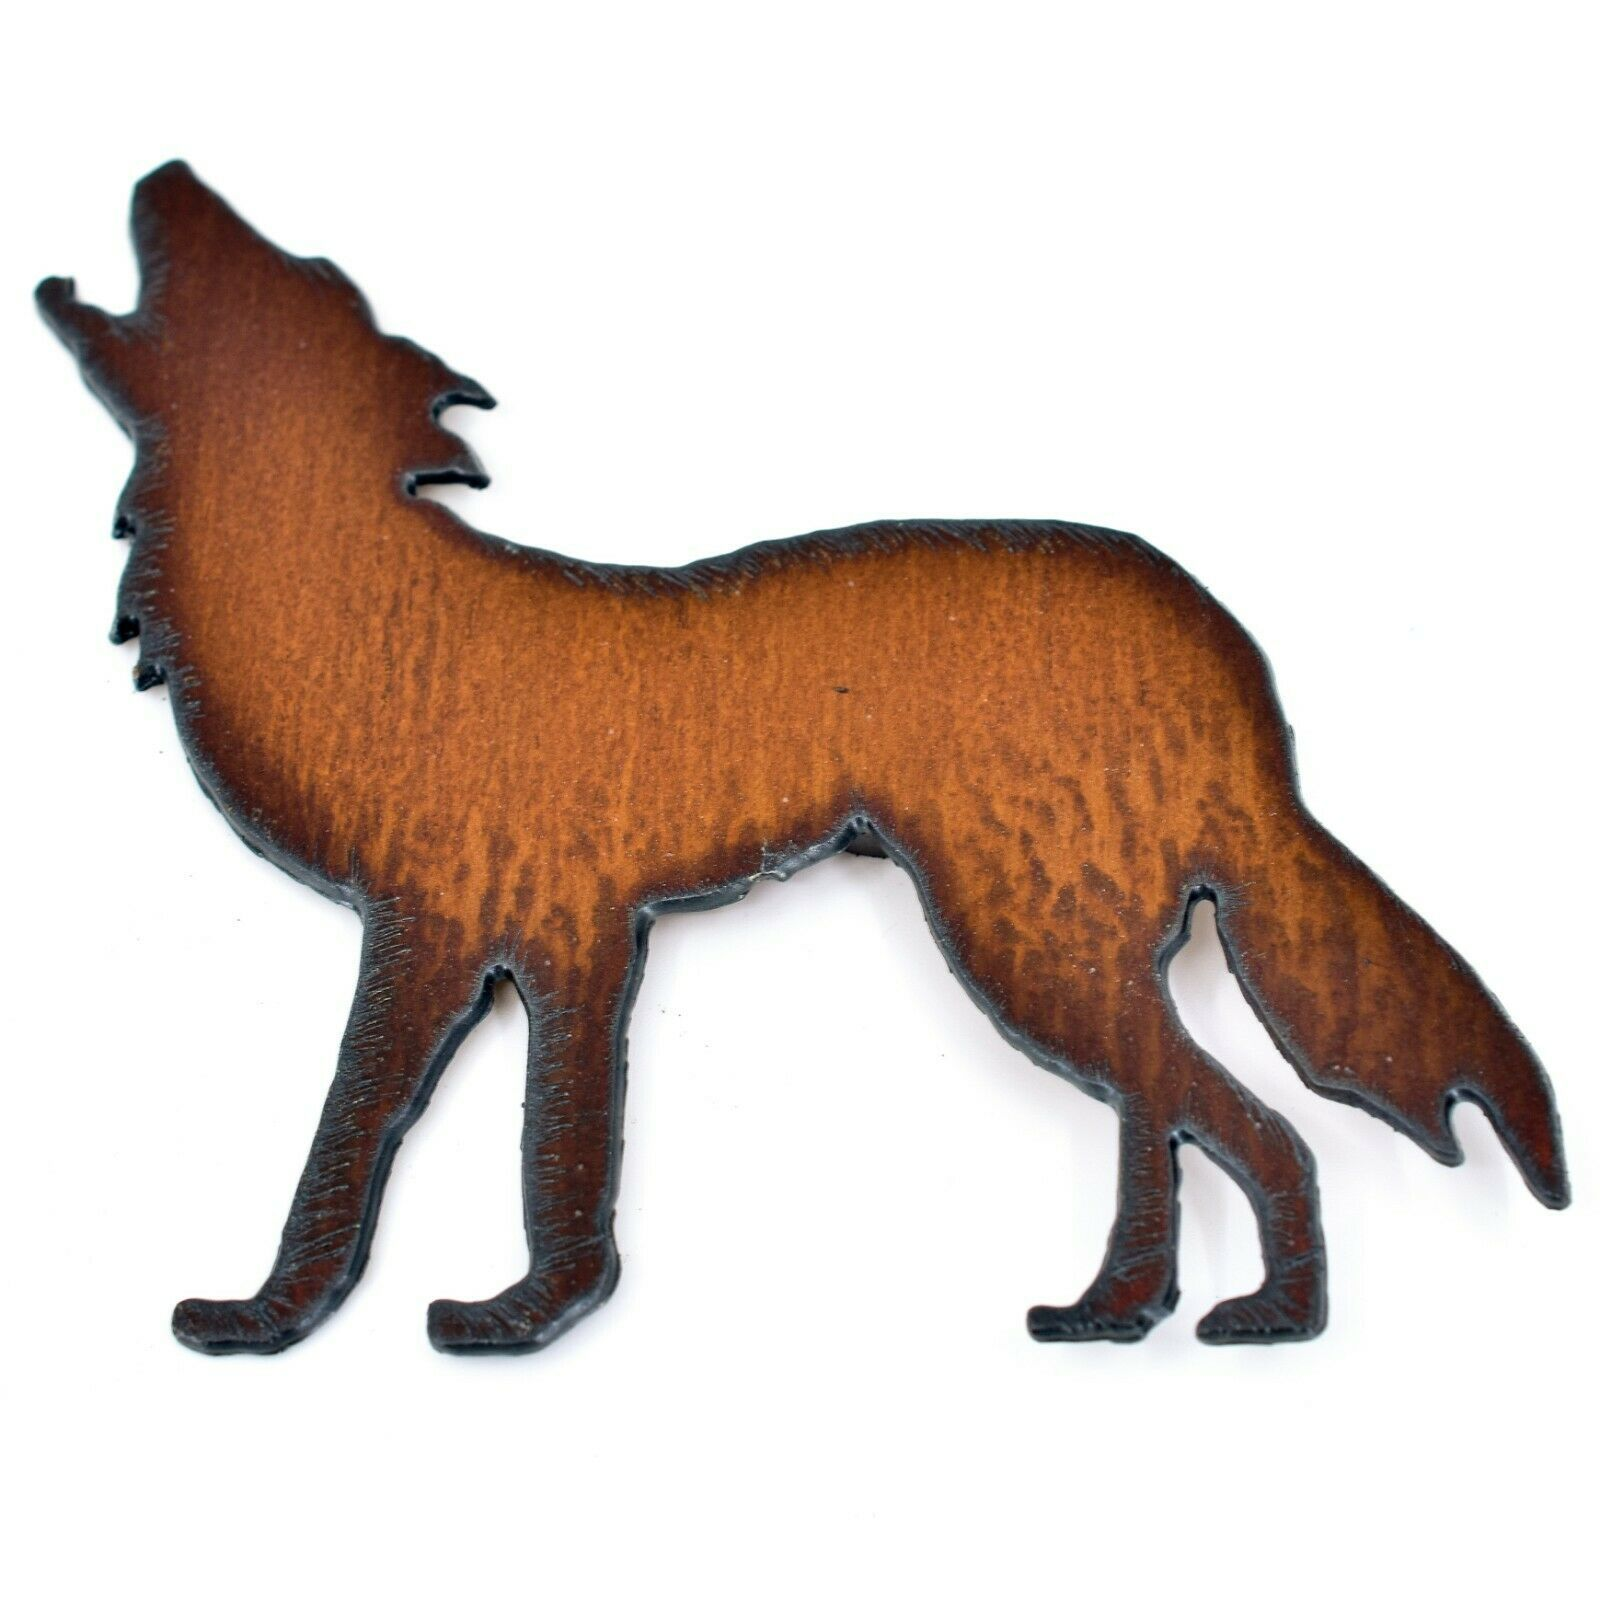 Rustic Country Rusted Patina Iron Metal Cutout Howling Wolf Refrigerator Magnet